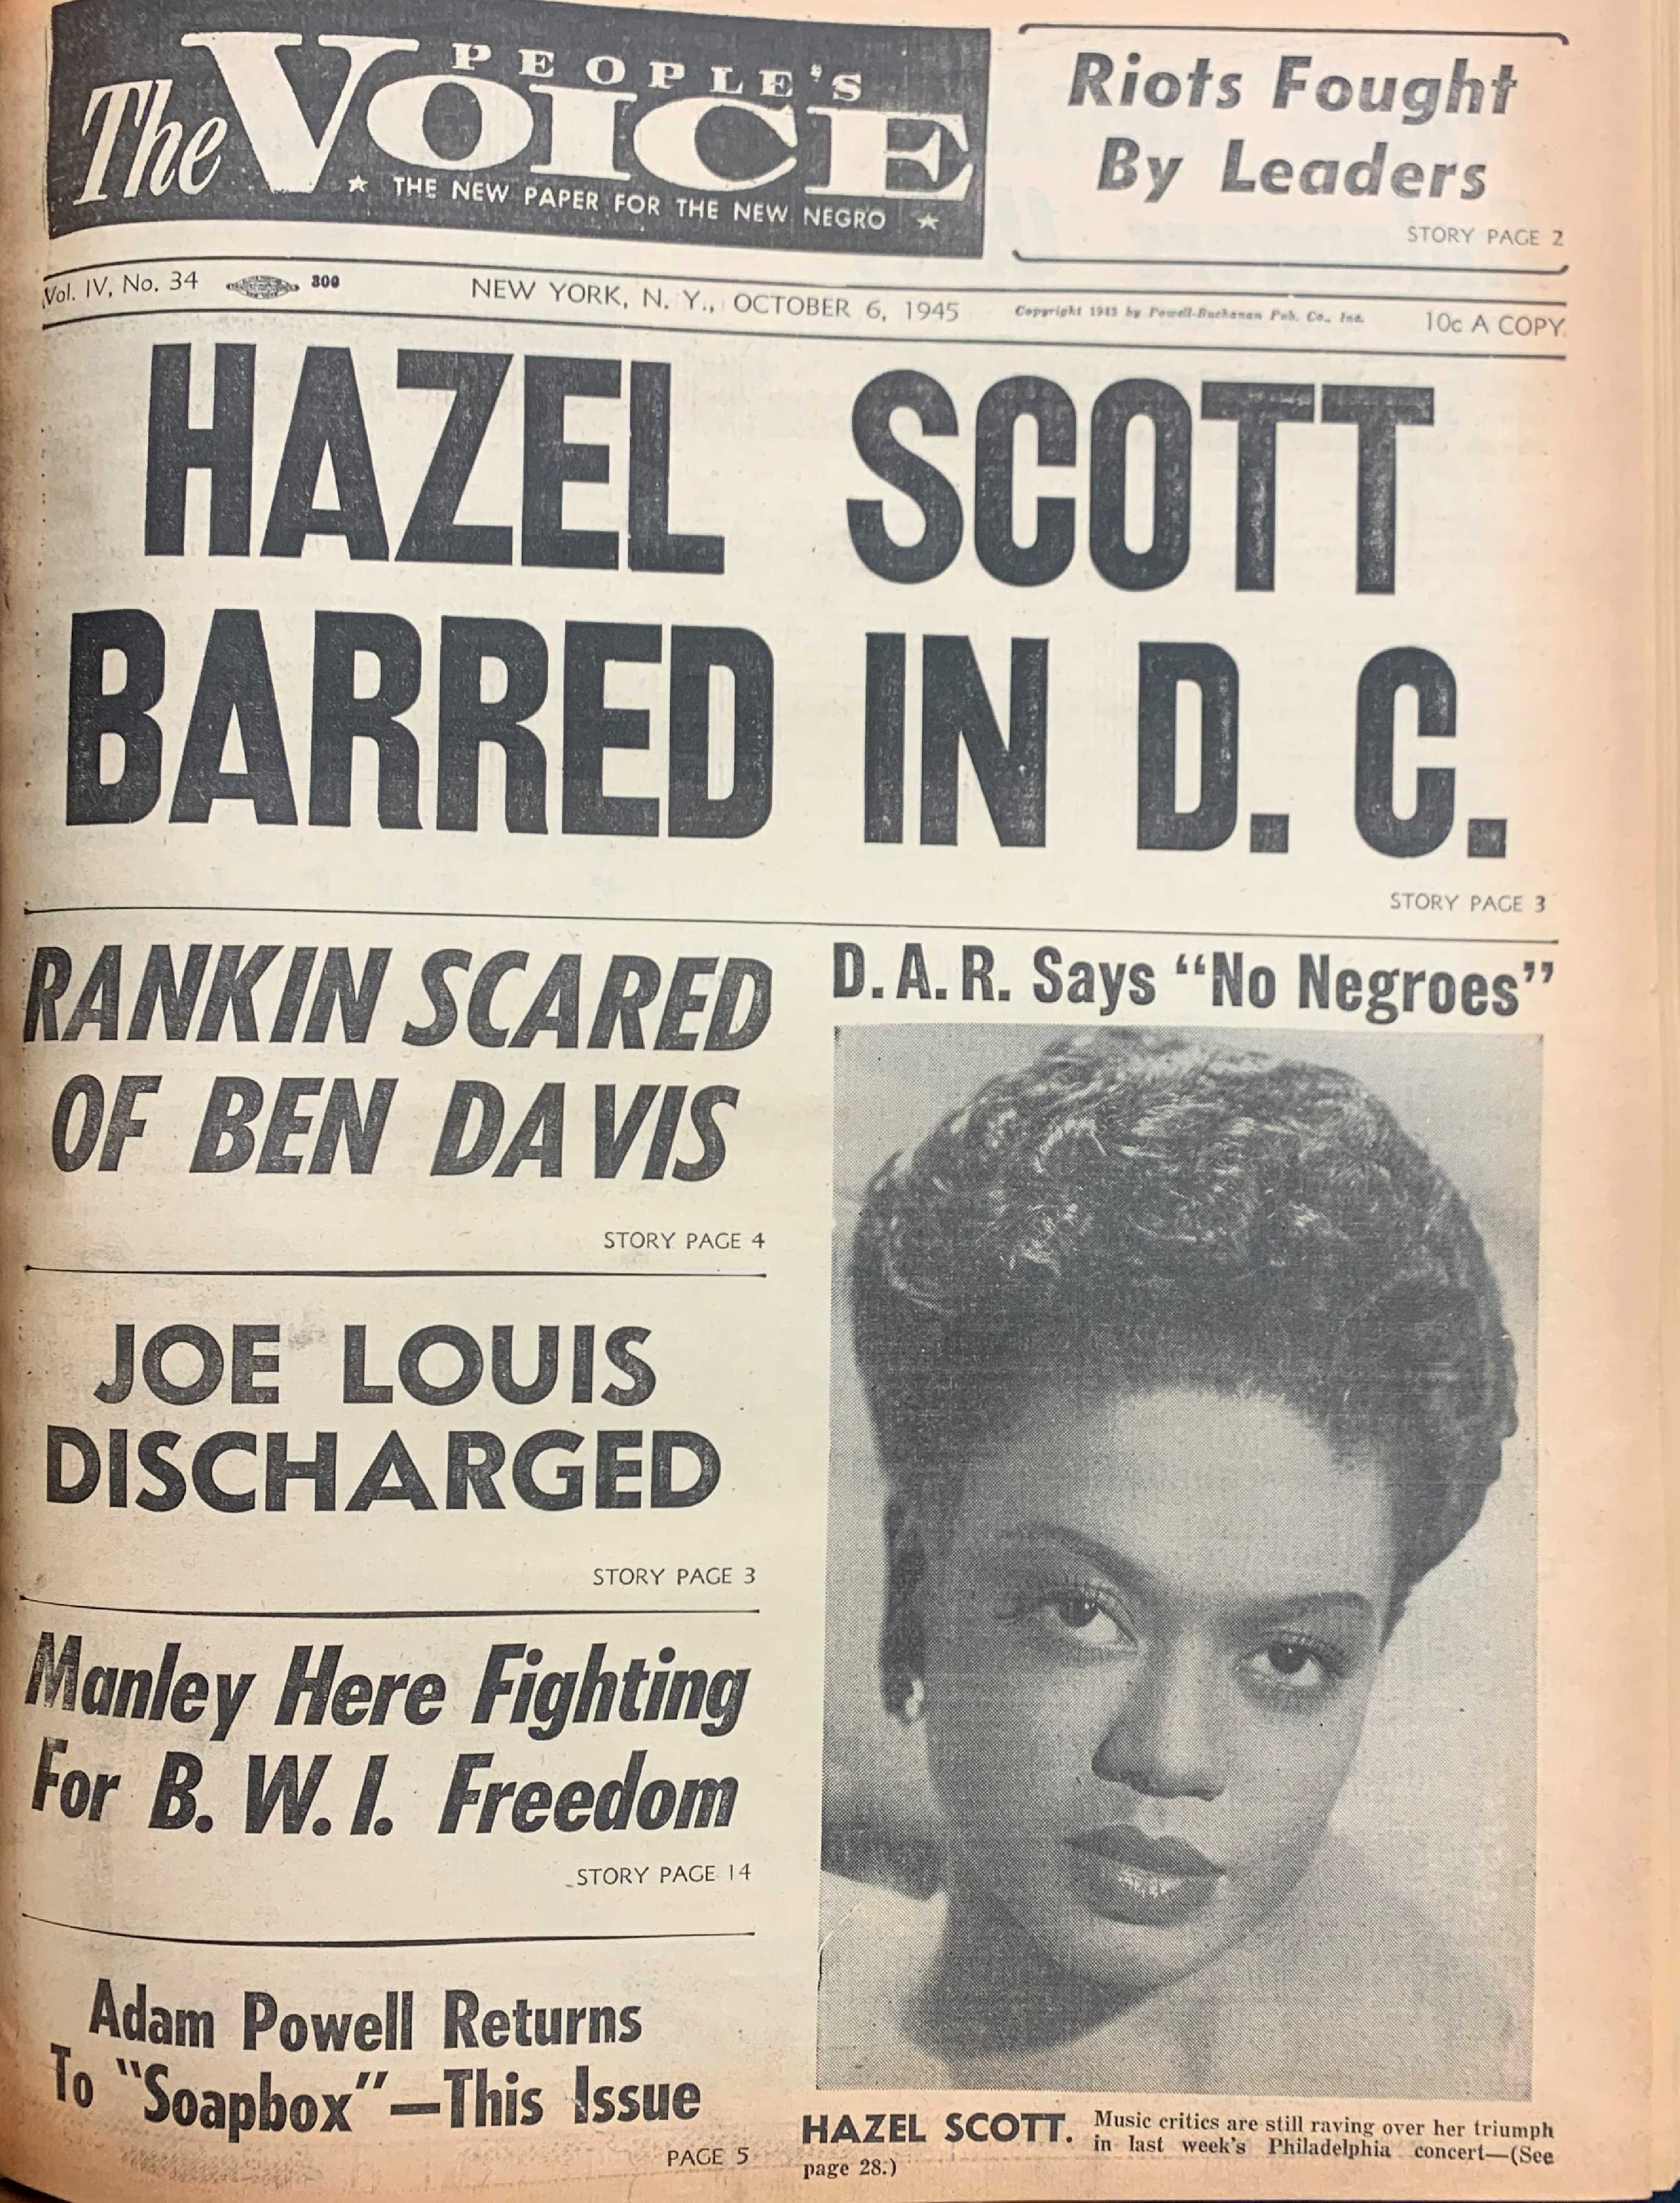 Hazel Scott The People's Voice